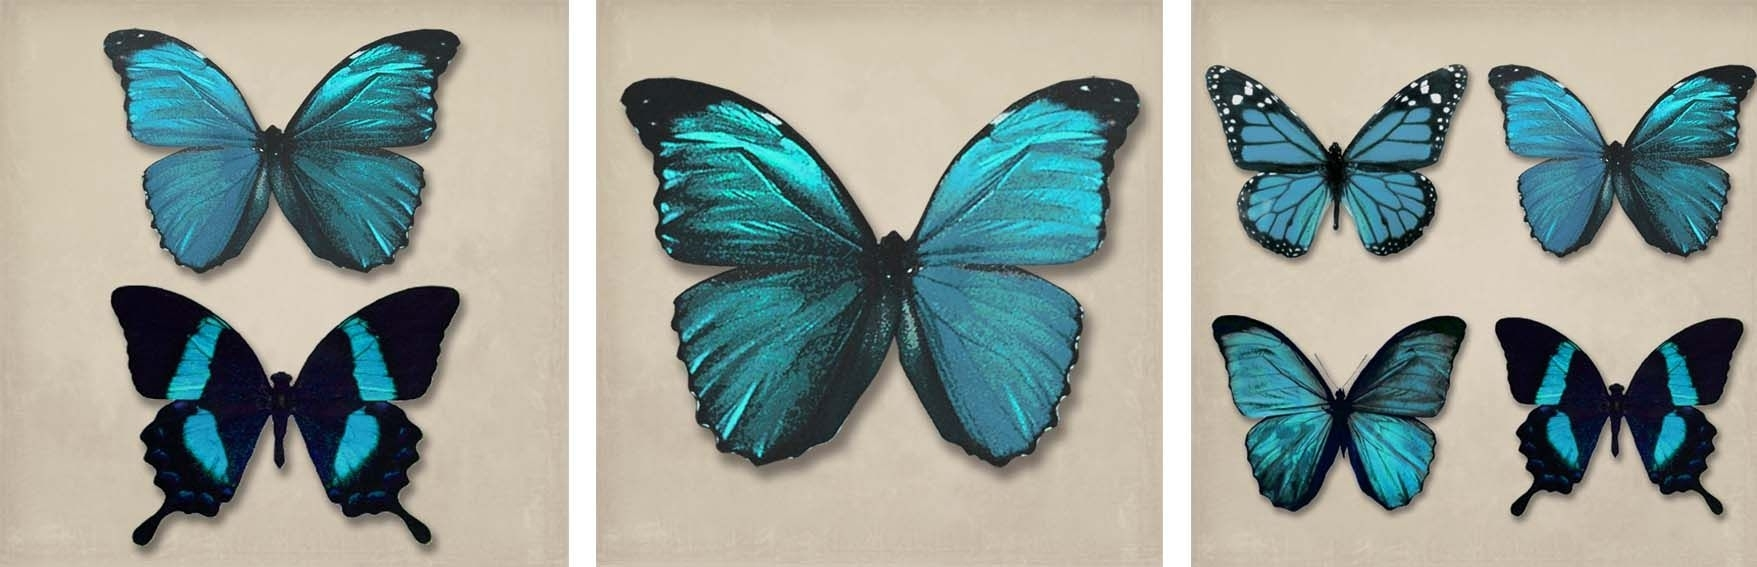 Teal Butterflies Set Of 3 Canvasesarthouse : Wallpaper Direct Throughout Most Up To Date Butterflies Canvas Wall Art (View 5 of 15)